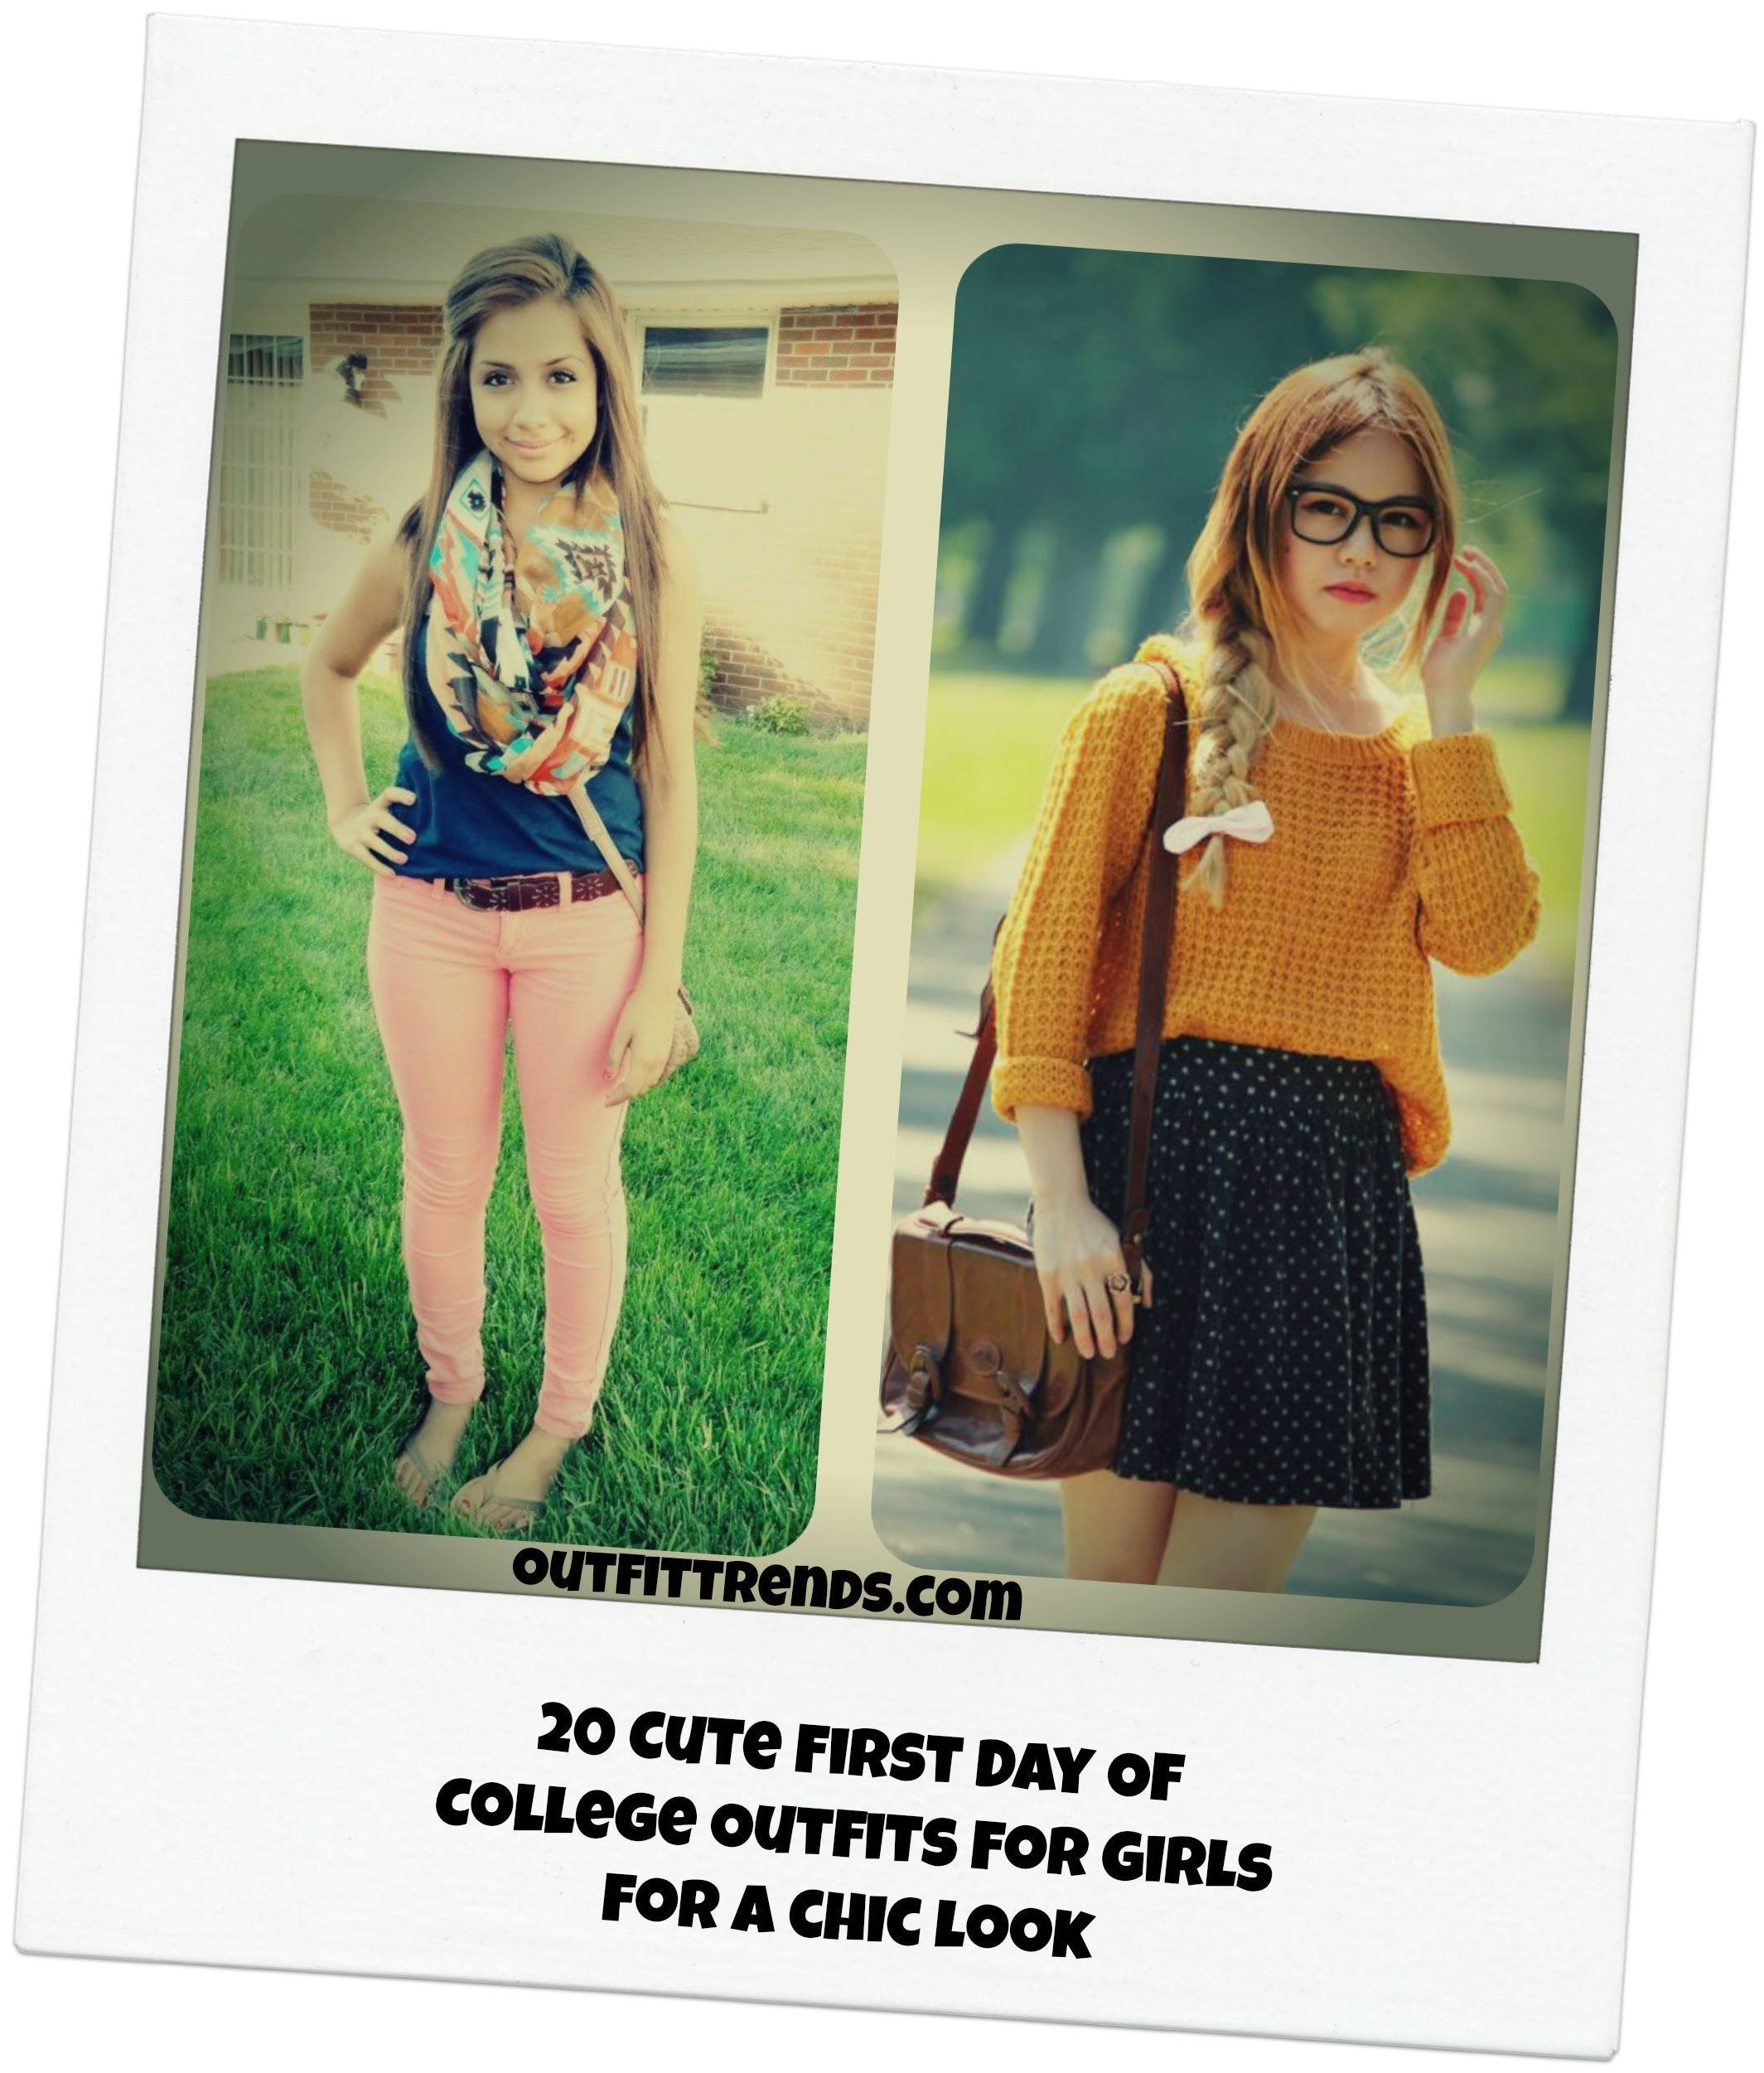 20 Cute First Day Of College Outfits For Girls For A Chic Look